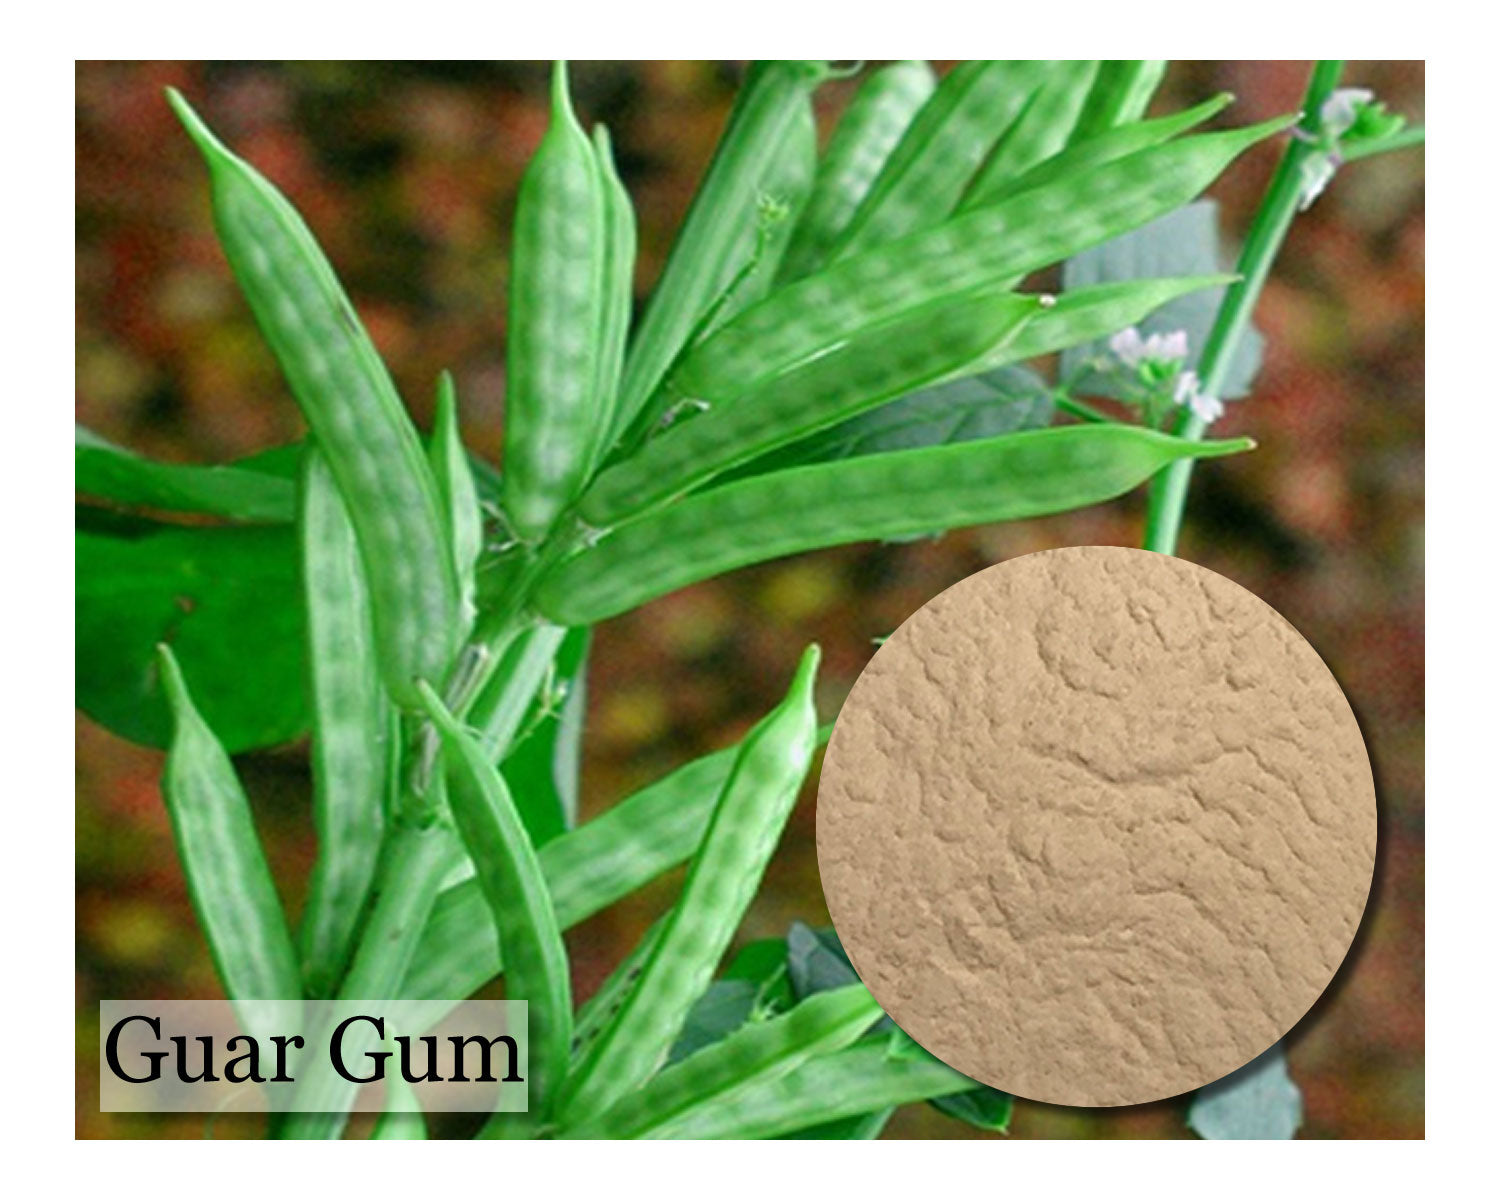 Guar Gum Powder - 2 oz